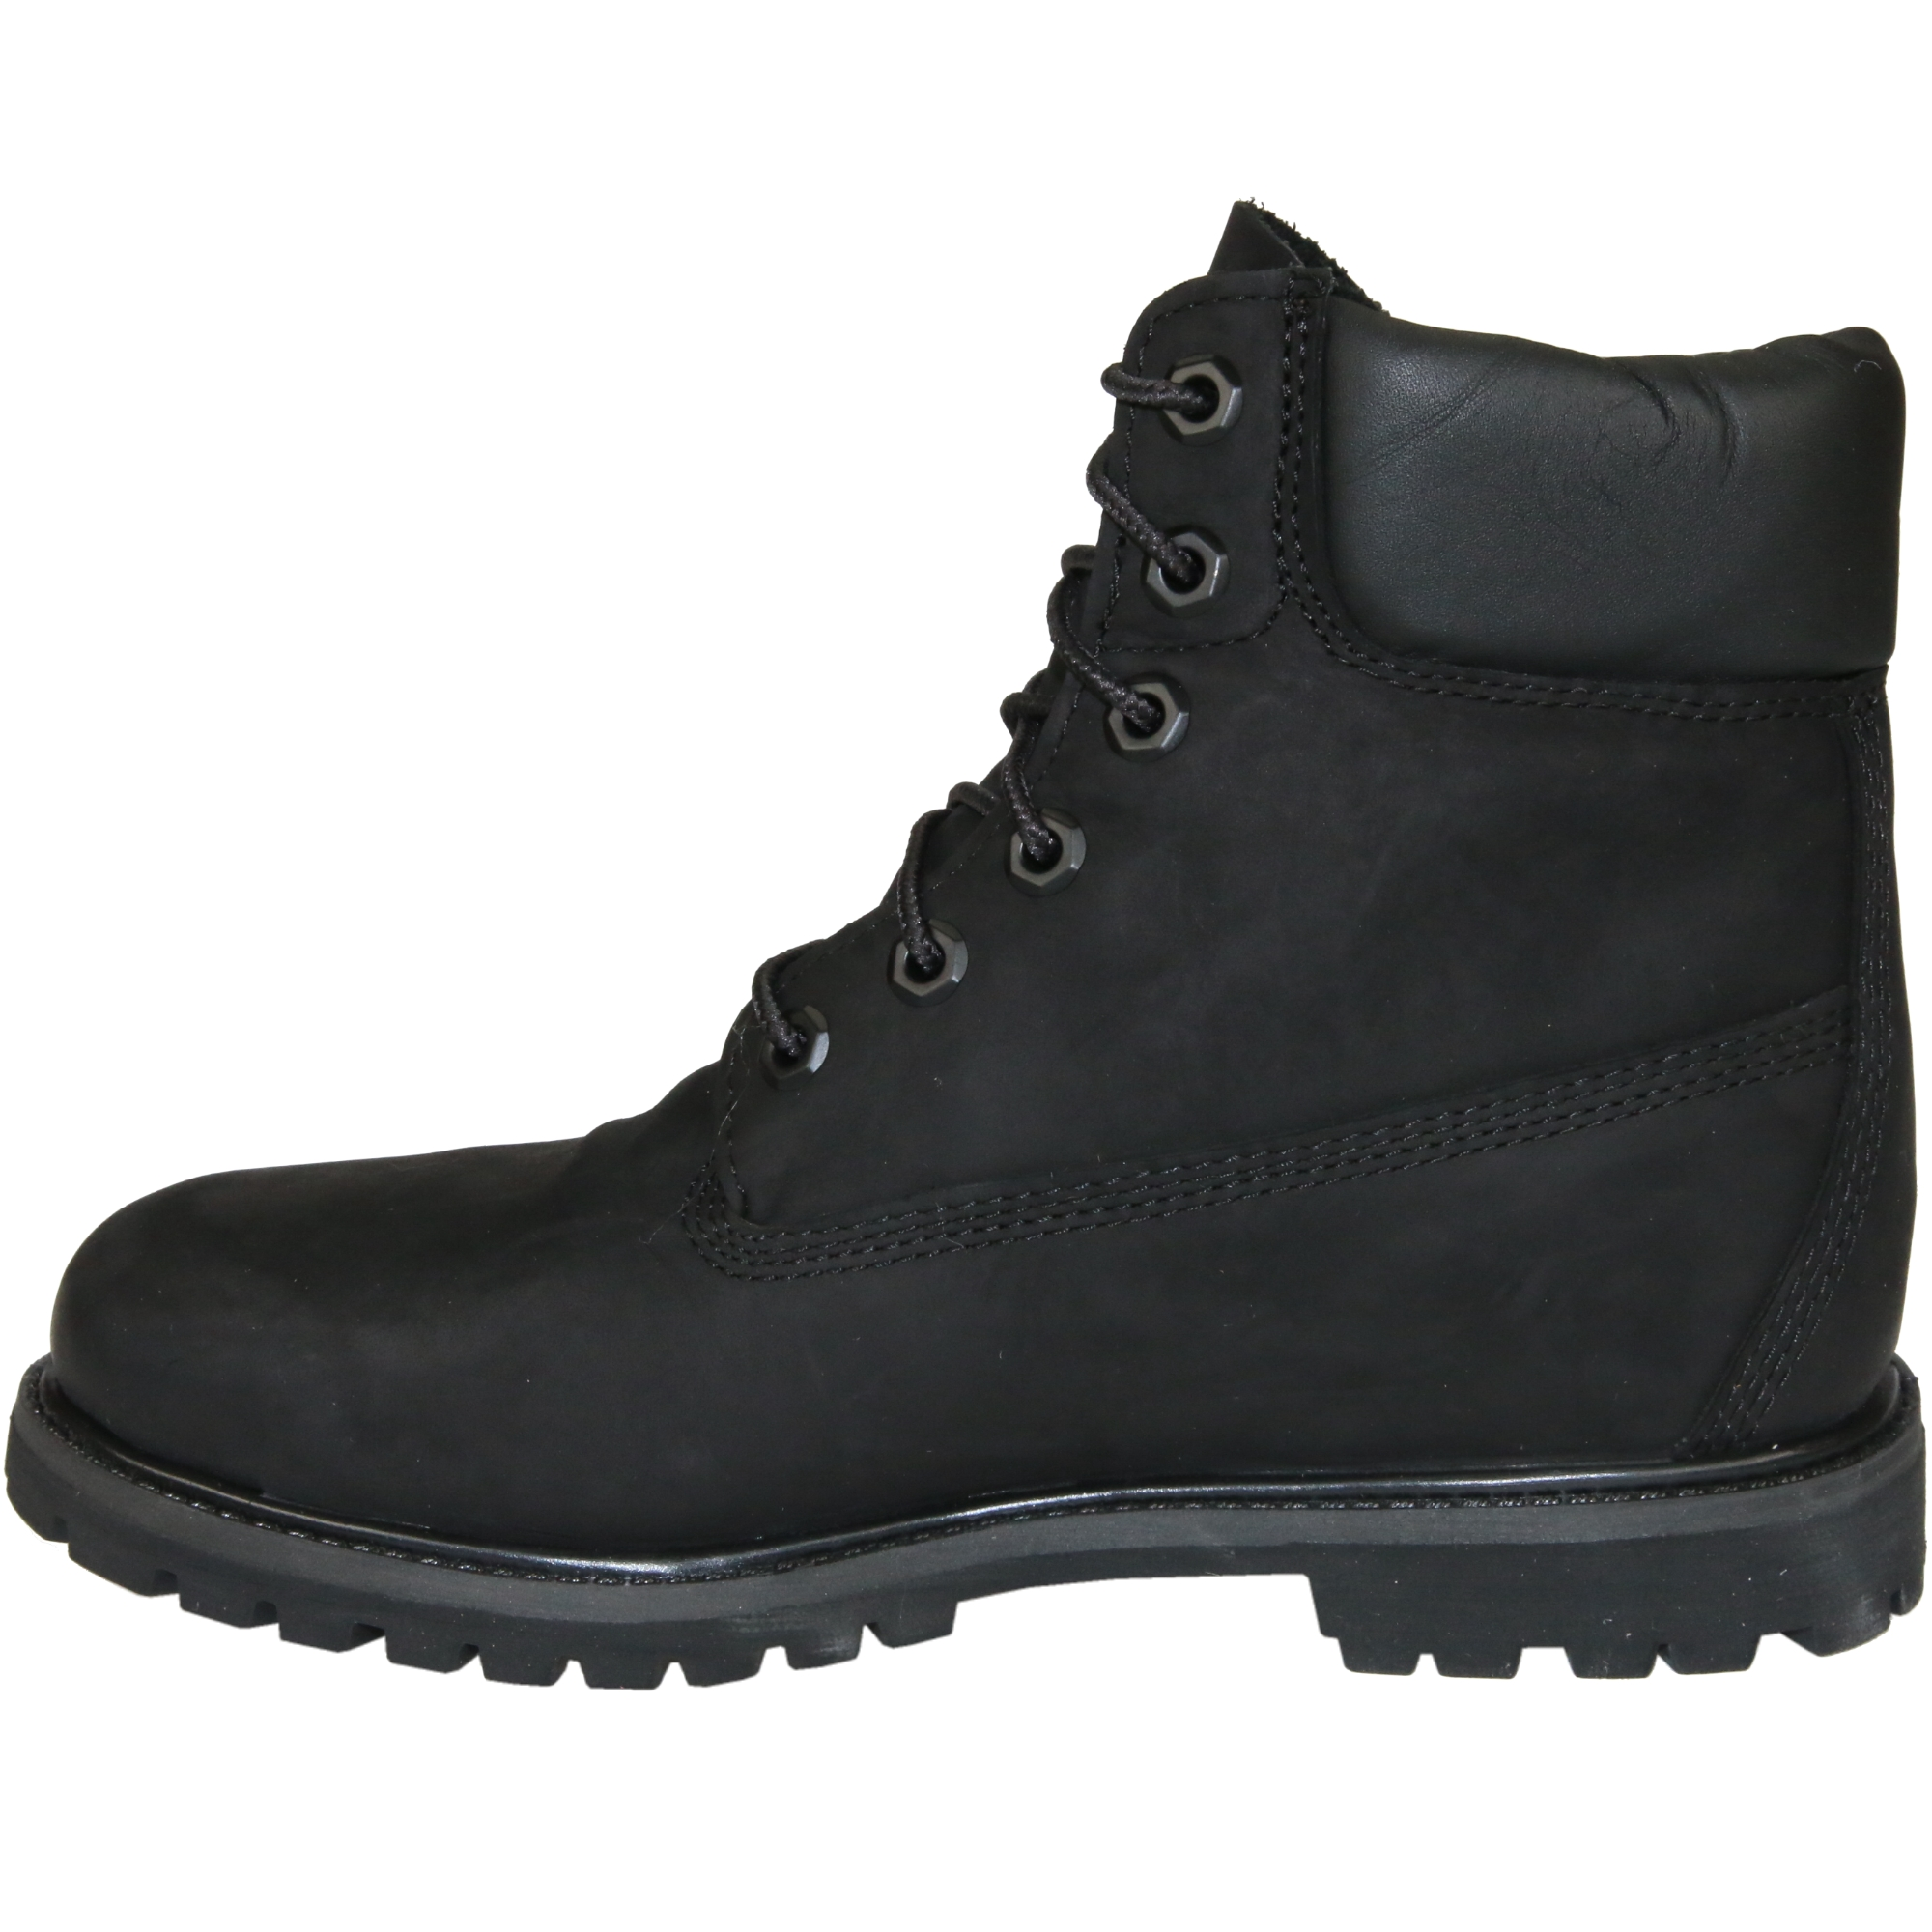 timberland 6 inch premium boot schuhe stiefel winterstiefel damen schwarz 8658a ebay. Black Bedroom Furniture Sets. Home Design Ideas